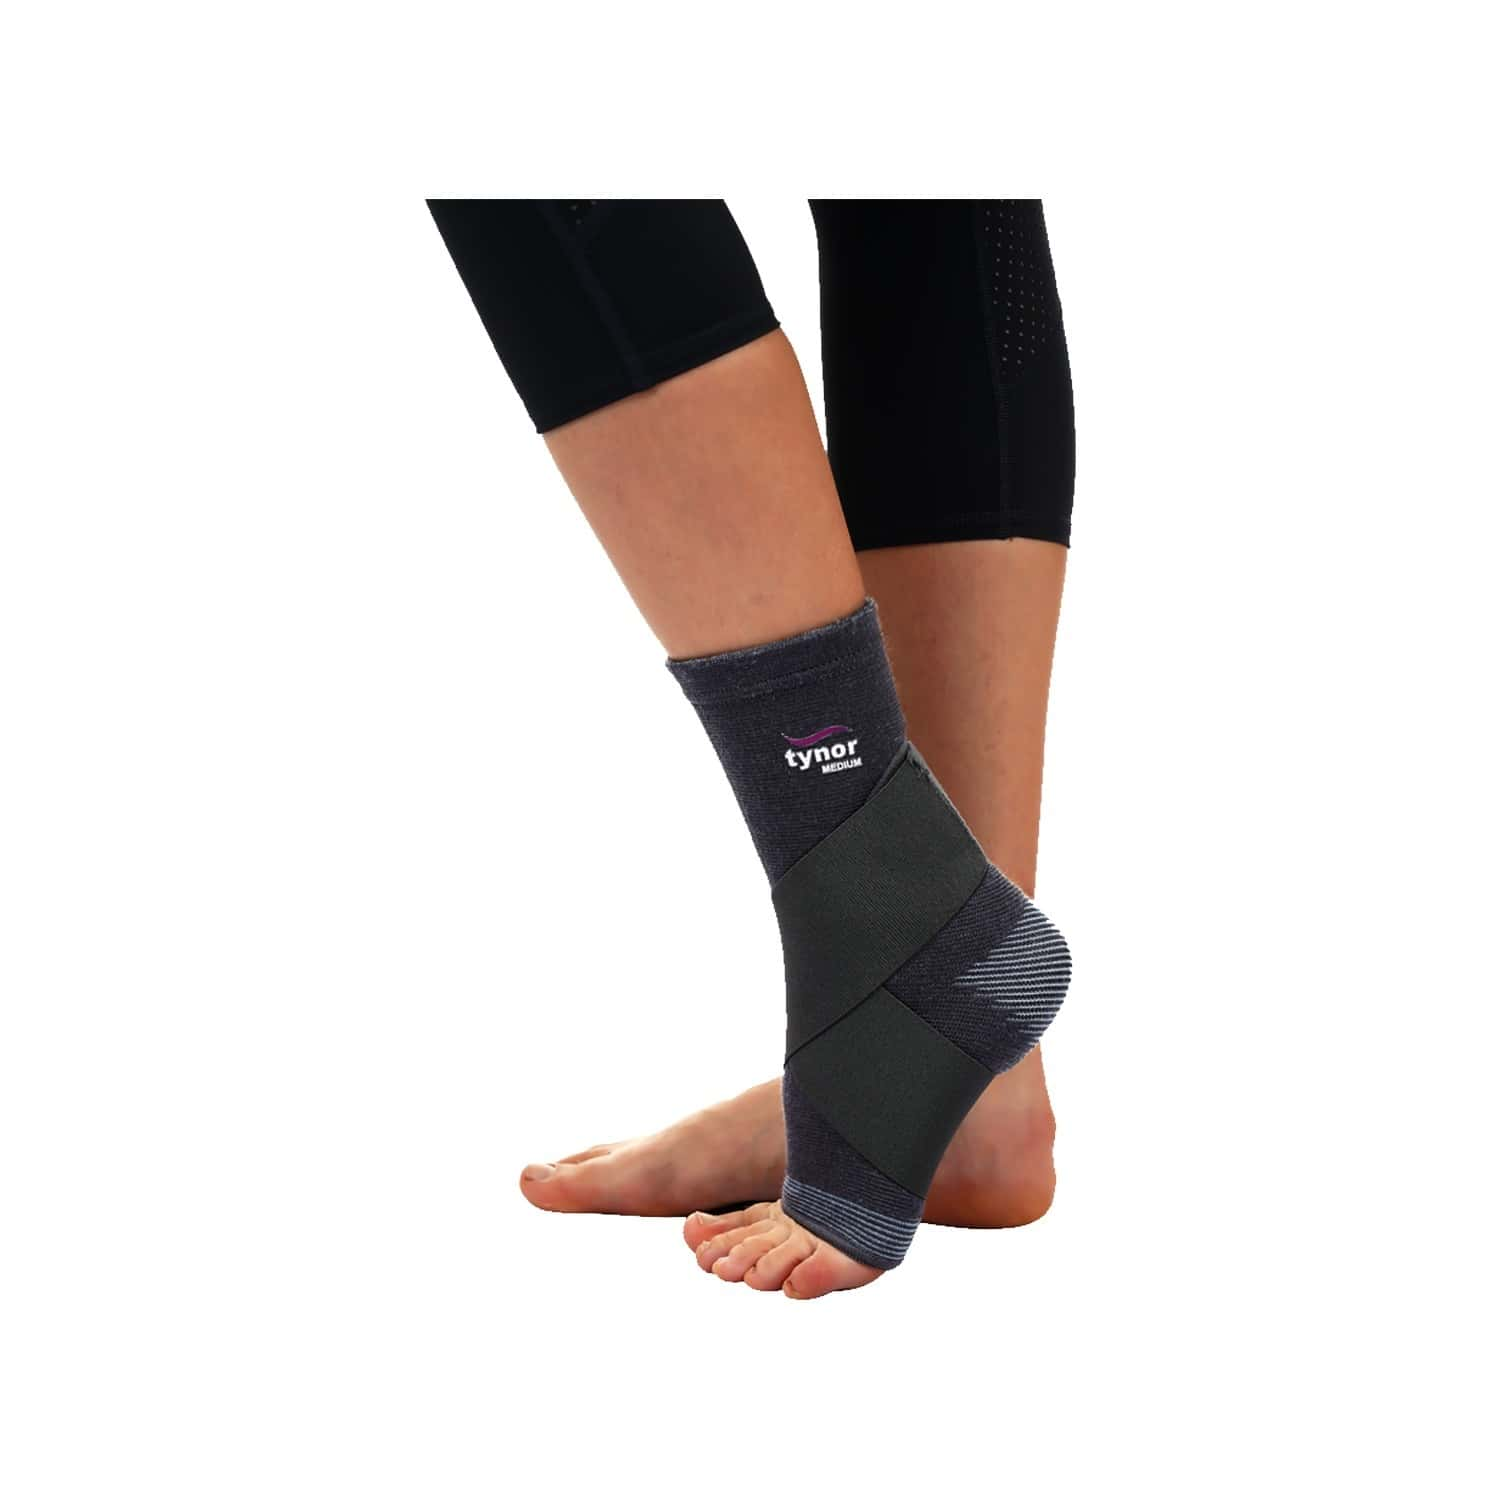 Tynor Ankle Binder ( Compression,pain Relief) - Medium